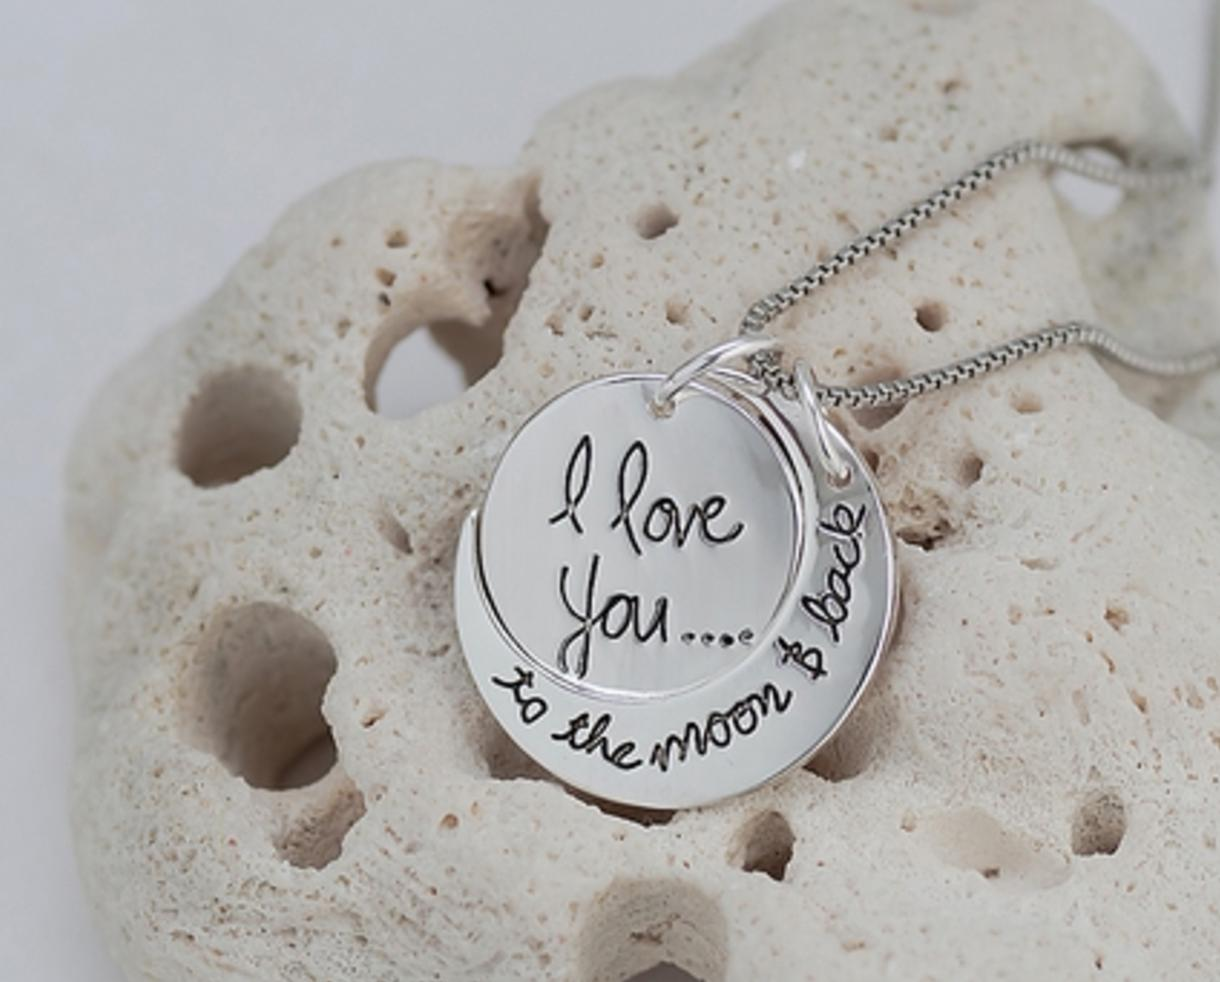 Deal 14 for i love you to the moon and back pendant necklace from 14 for i love you to the moon and back pendant necklace from monogram hub shipping included 69 off mozeypictures Choice Image